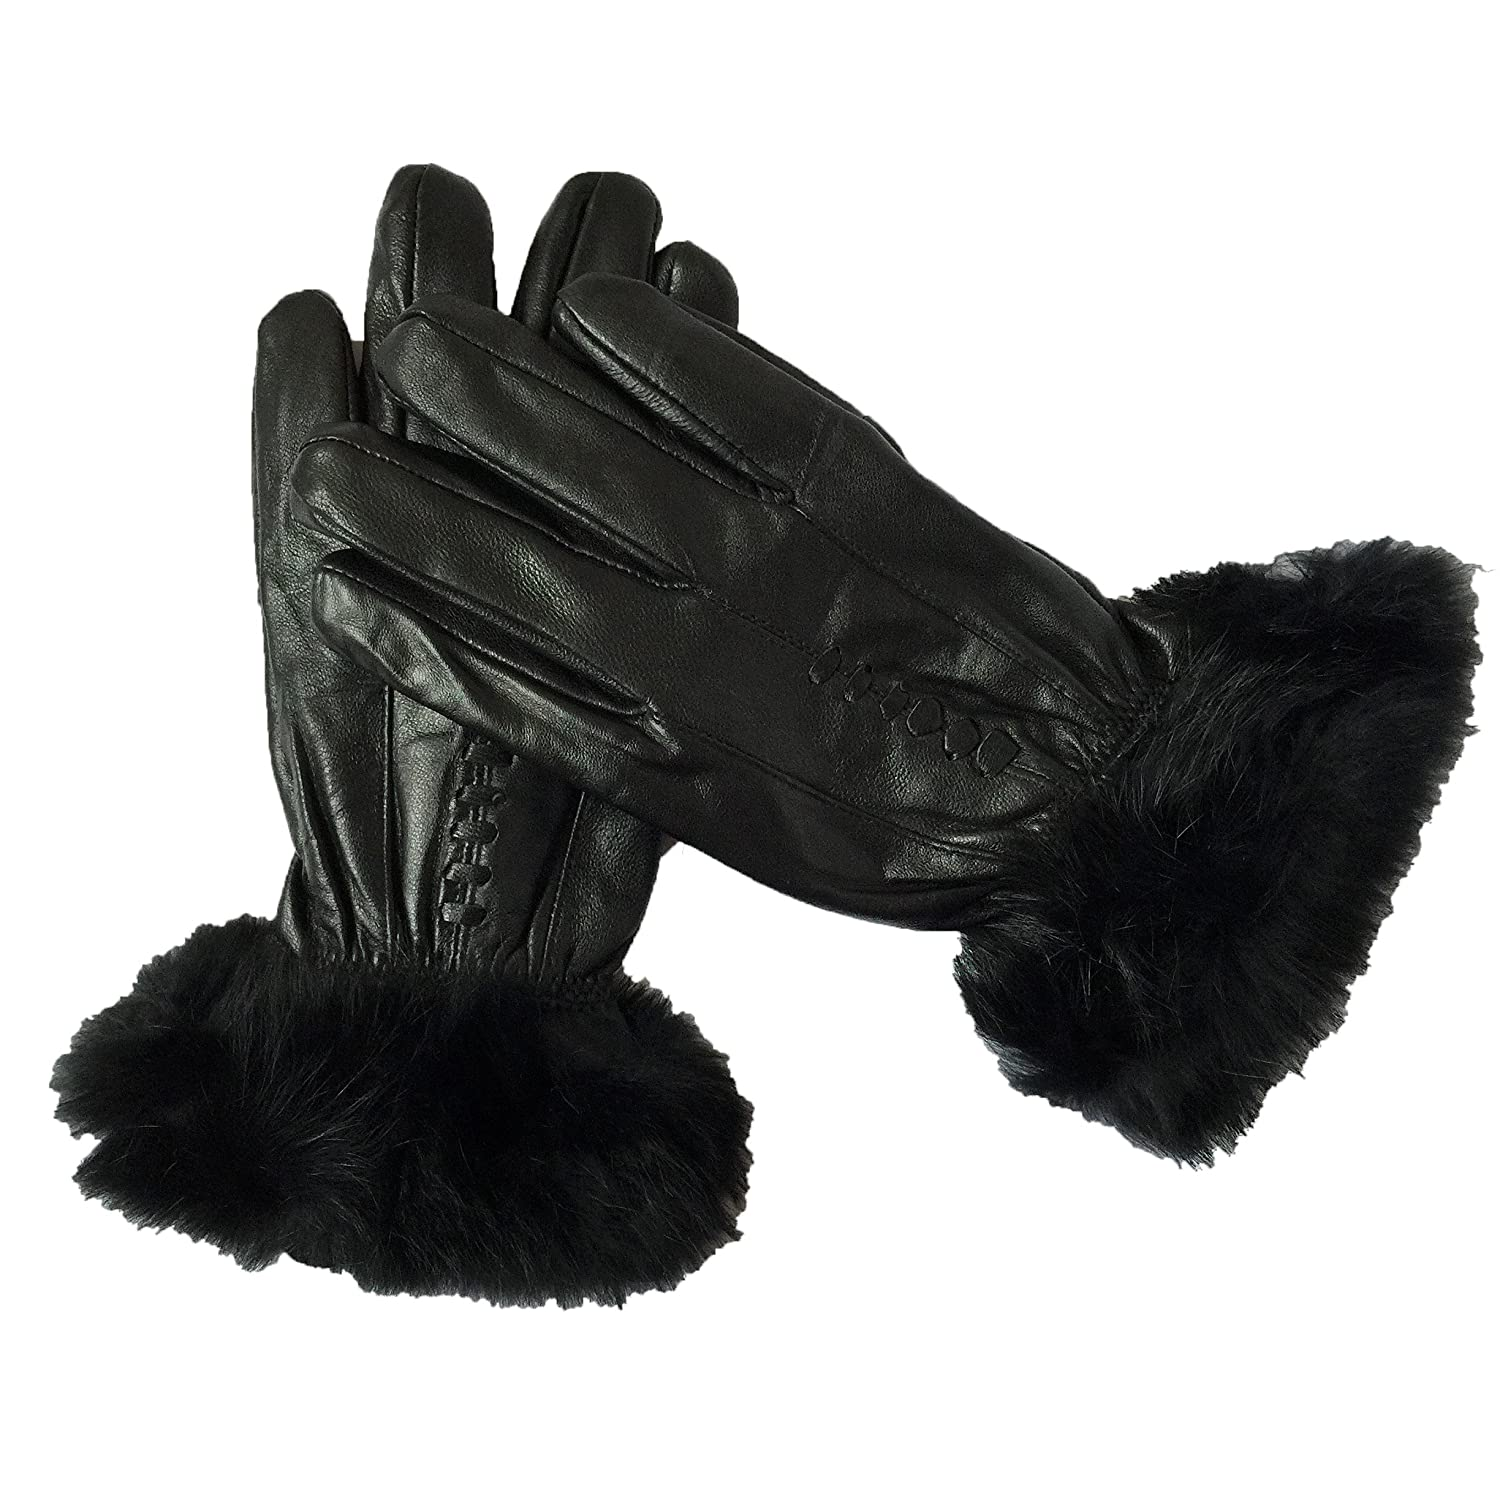 Ladies thermal leather gloves uk - Ladies Genuine Leather Gloves Thinsulate Fleece Lined Driving Soft Winter Warm Touch Screen